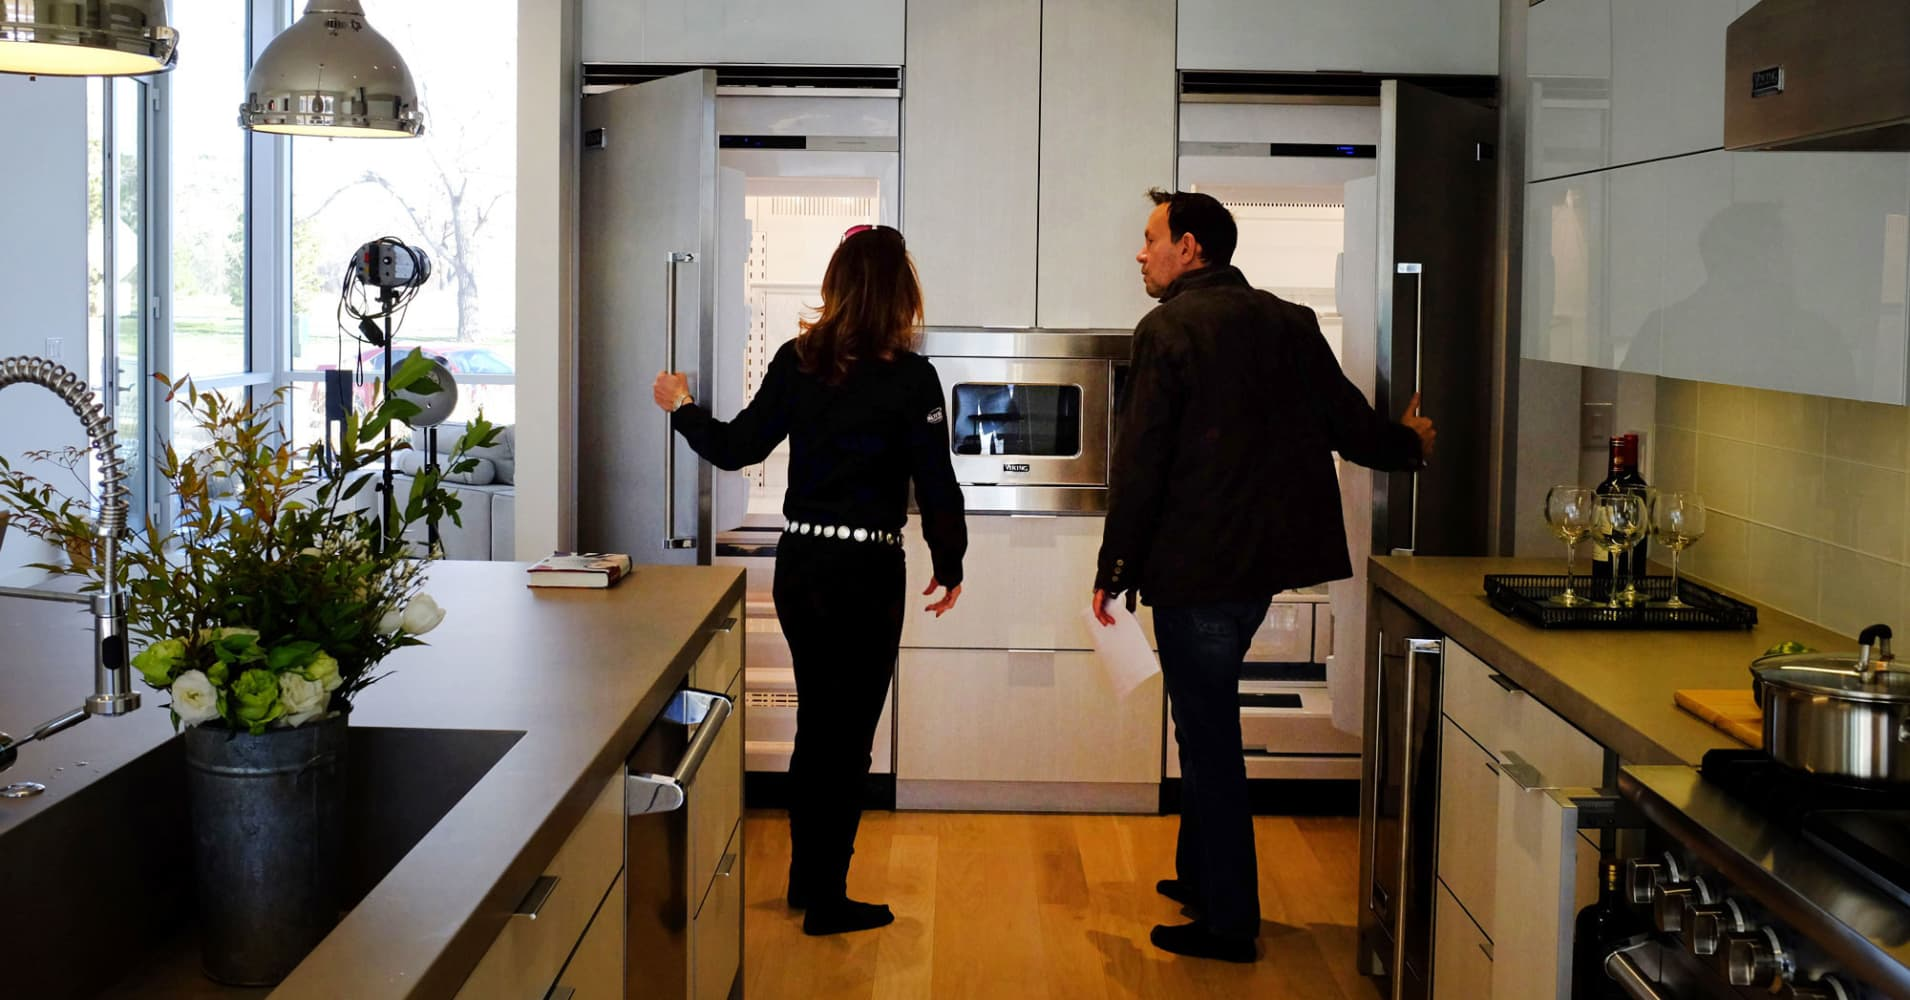 Prospective home buyers looking at a new home for sale.